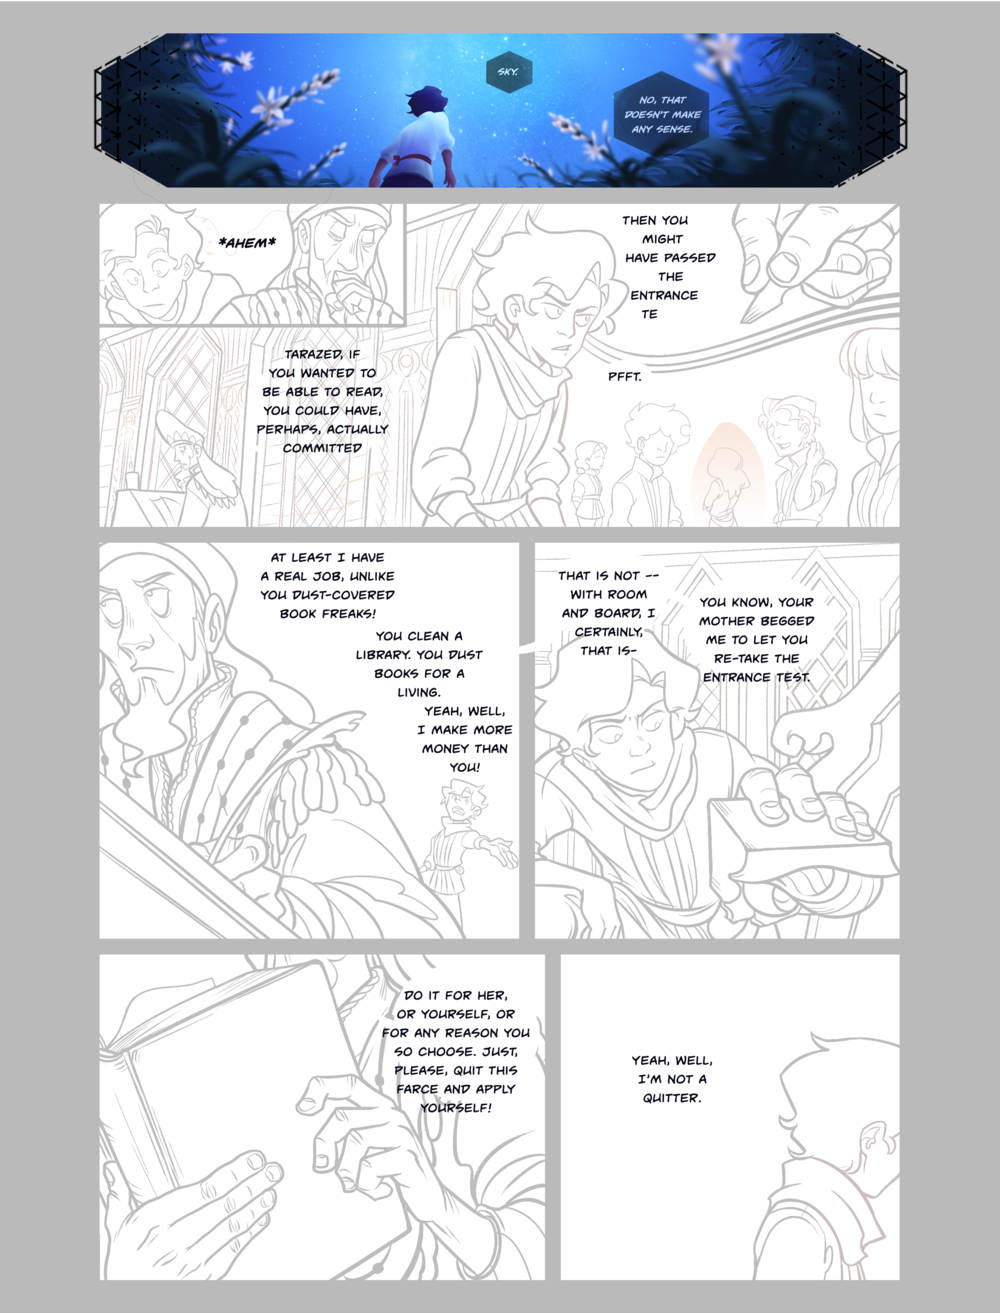 The same process occurs with the thumbnails in reverse. Zixing takes the script and draws out loose drafts which I then critique and give notes about.